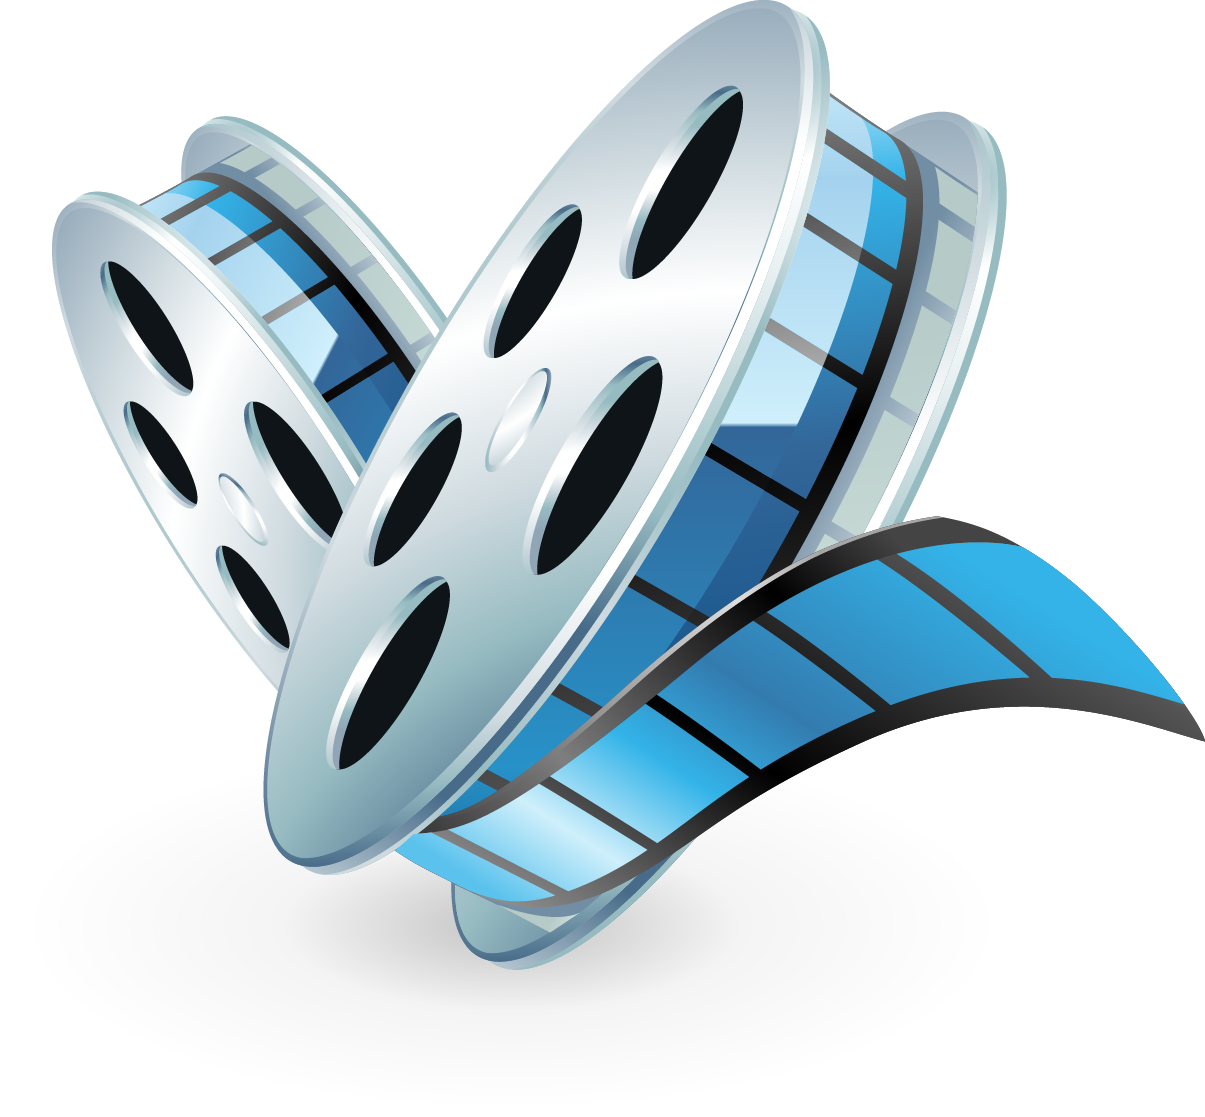 Www png video clips com. Freemake converter data conversion